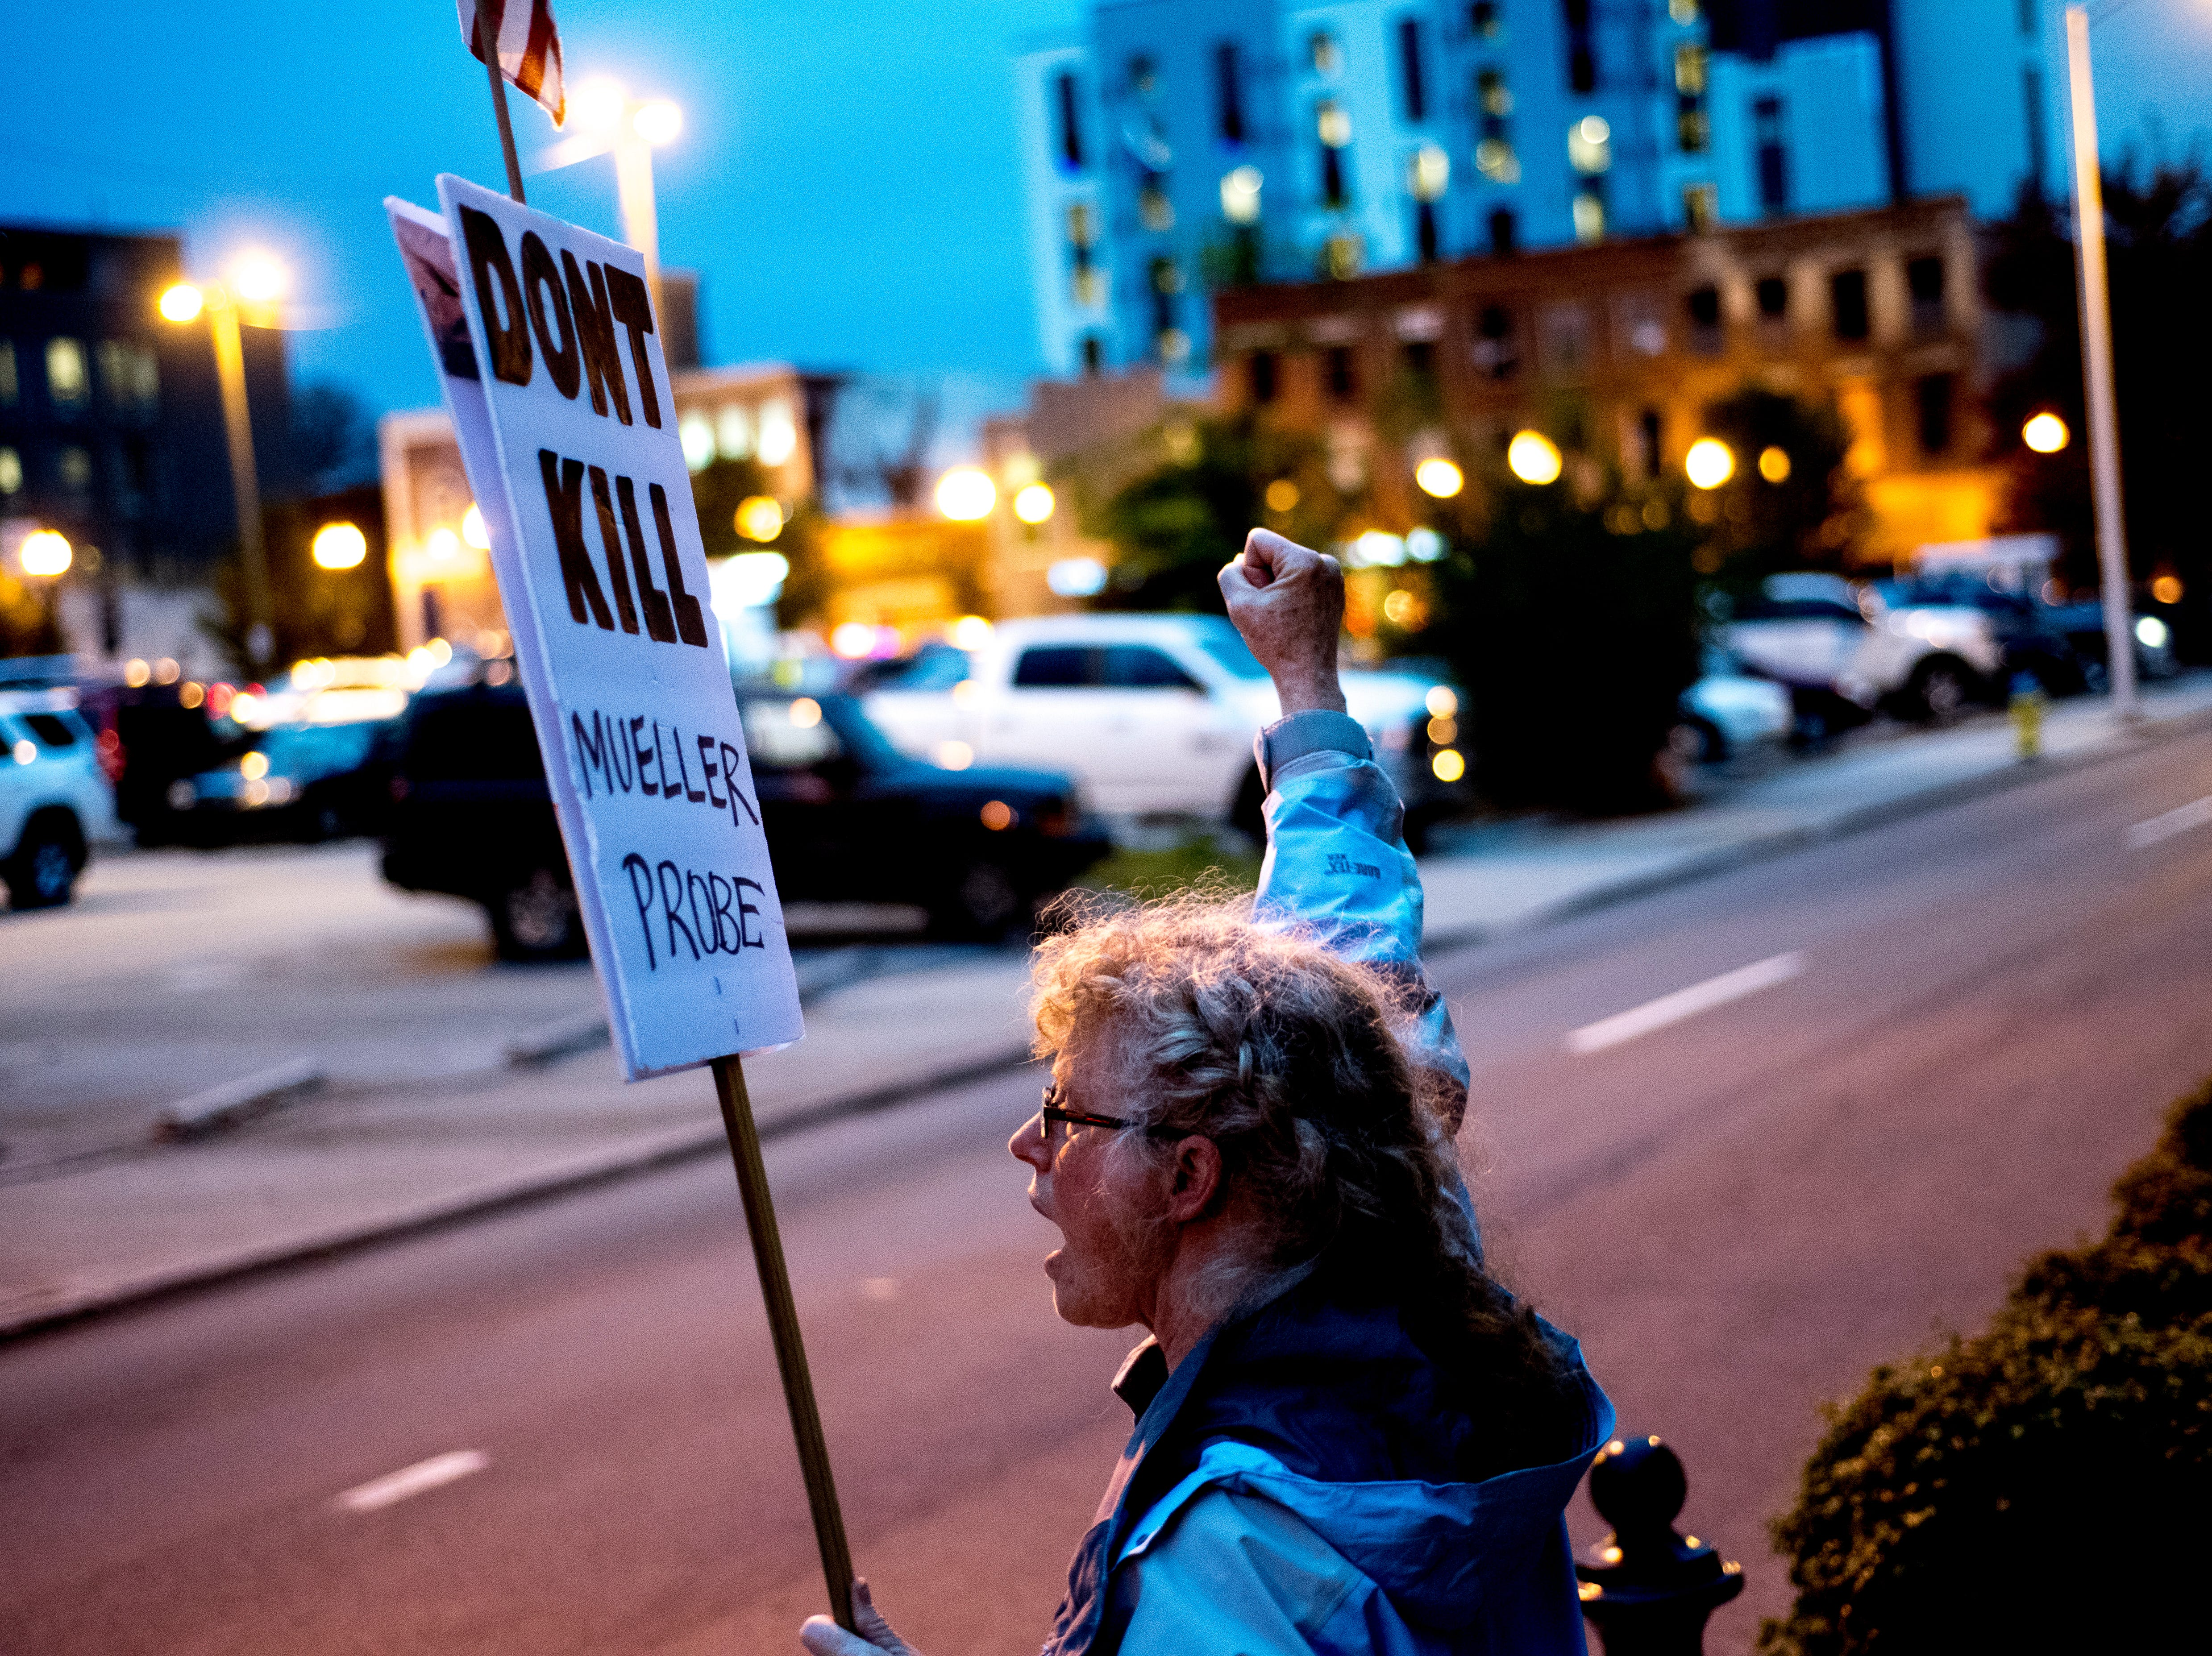 Linda Sharp, of Maryville, chants to passersby during a protest against the firing of United States Attorney General Jeff Sessions outside of the Federal Courthouse in Knoxville, Tennessee on Thursday, November 8, 2018.